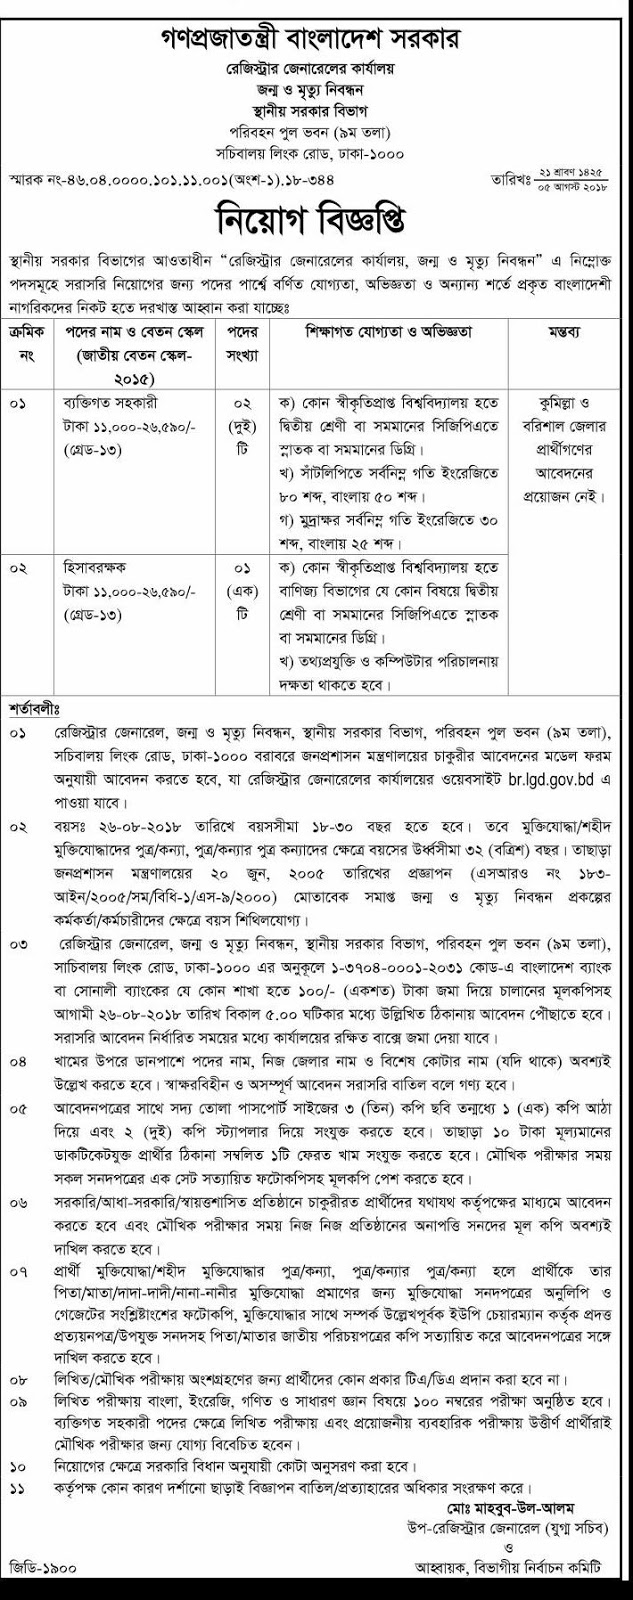 Registrar General's Office, Birth and Death Registration Job Circular 2018